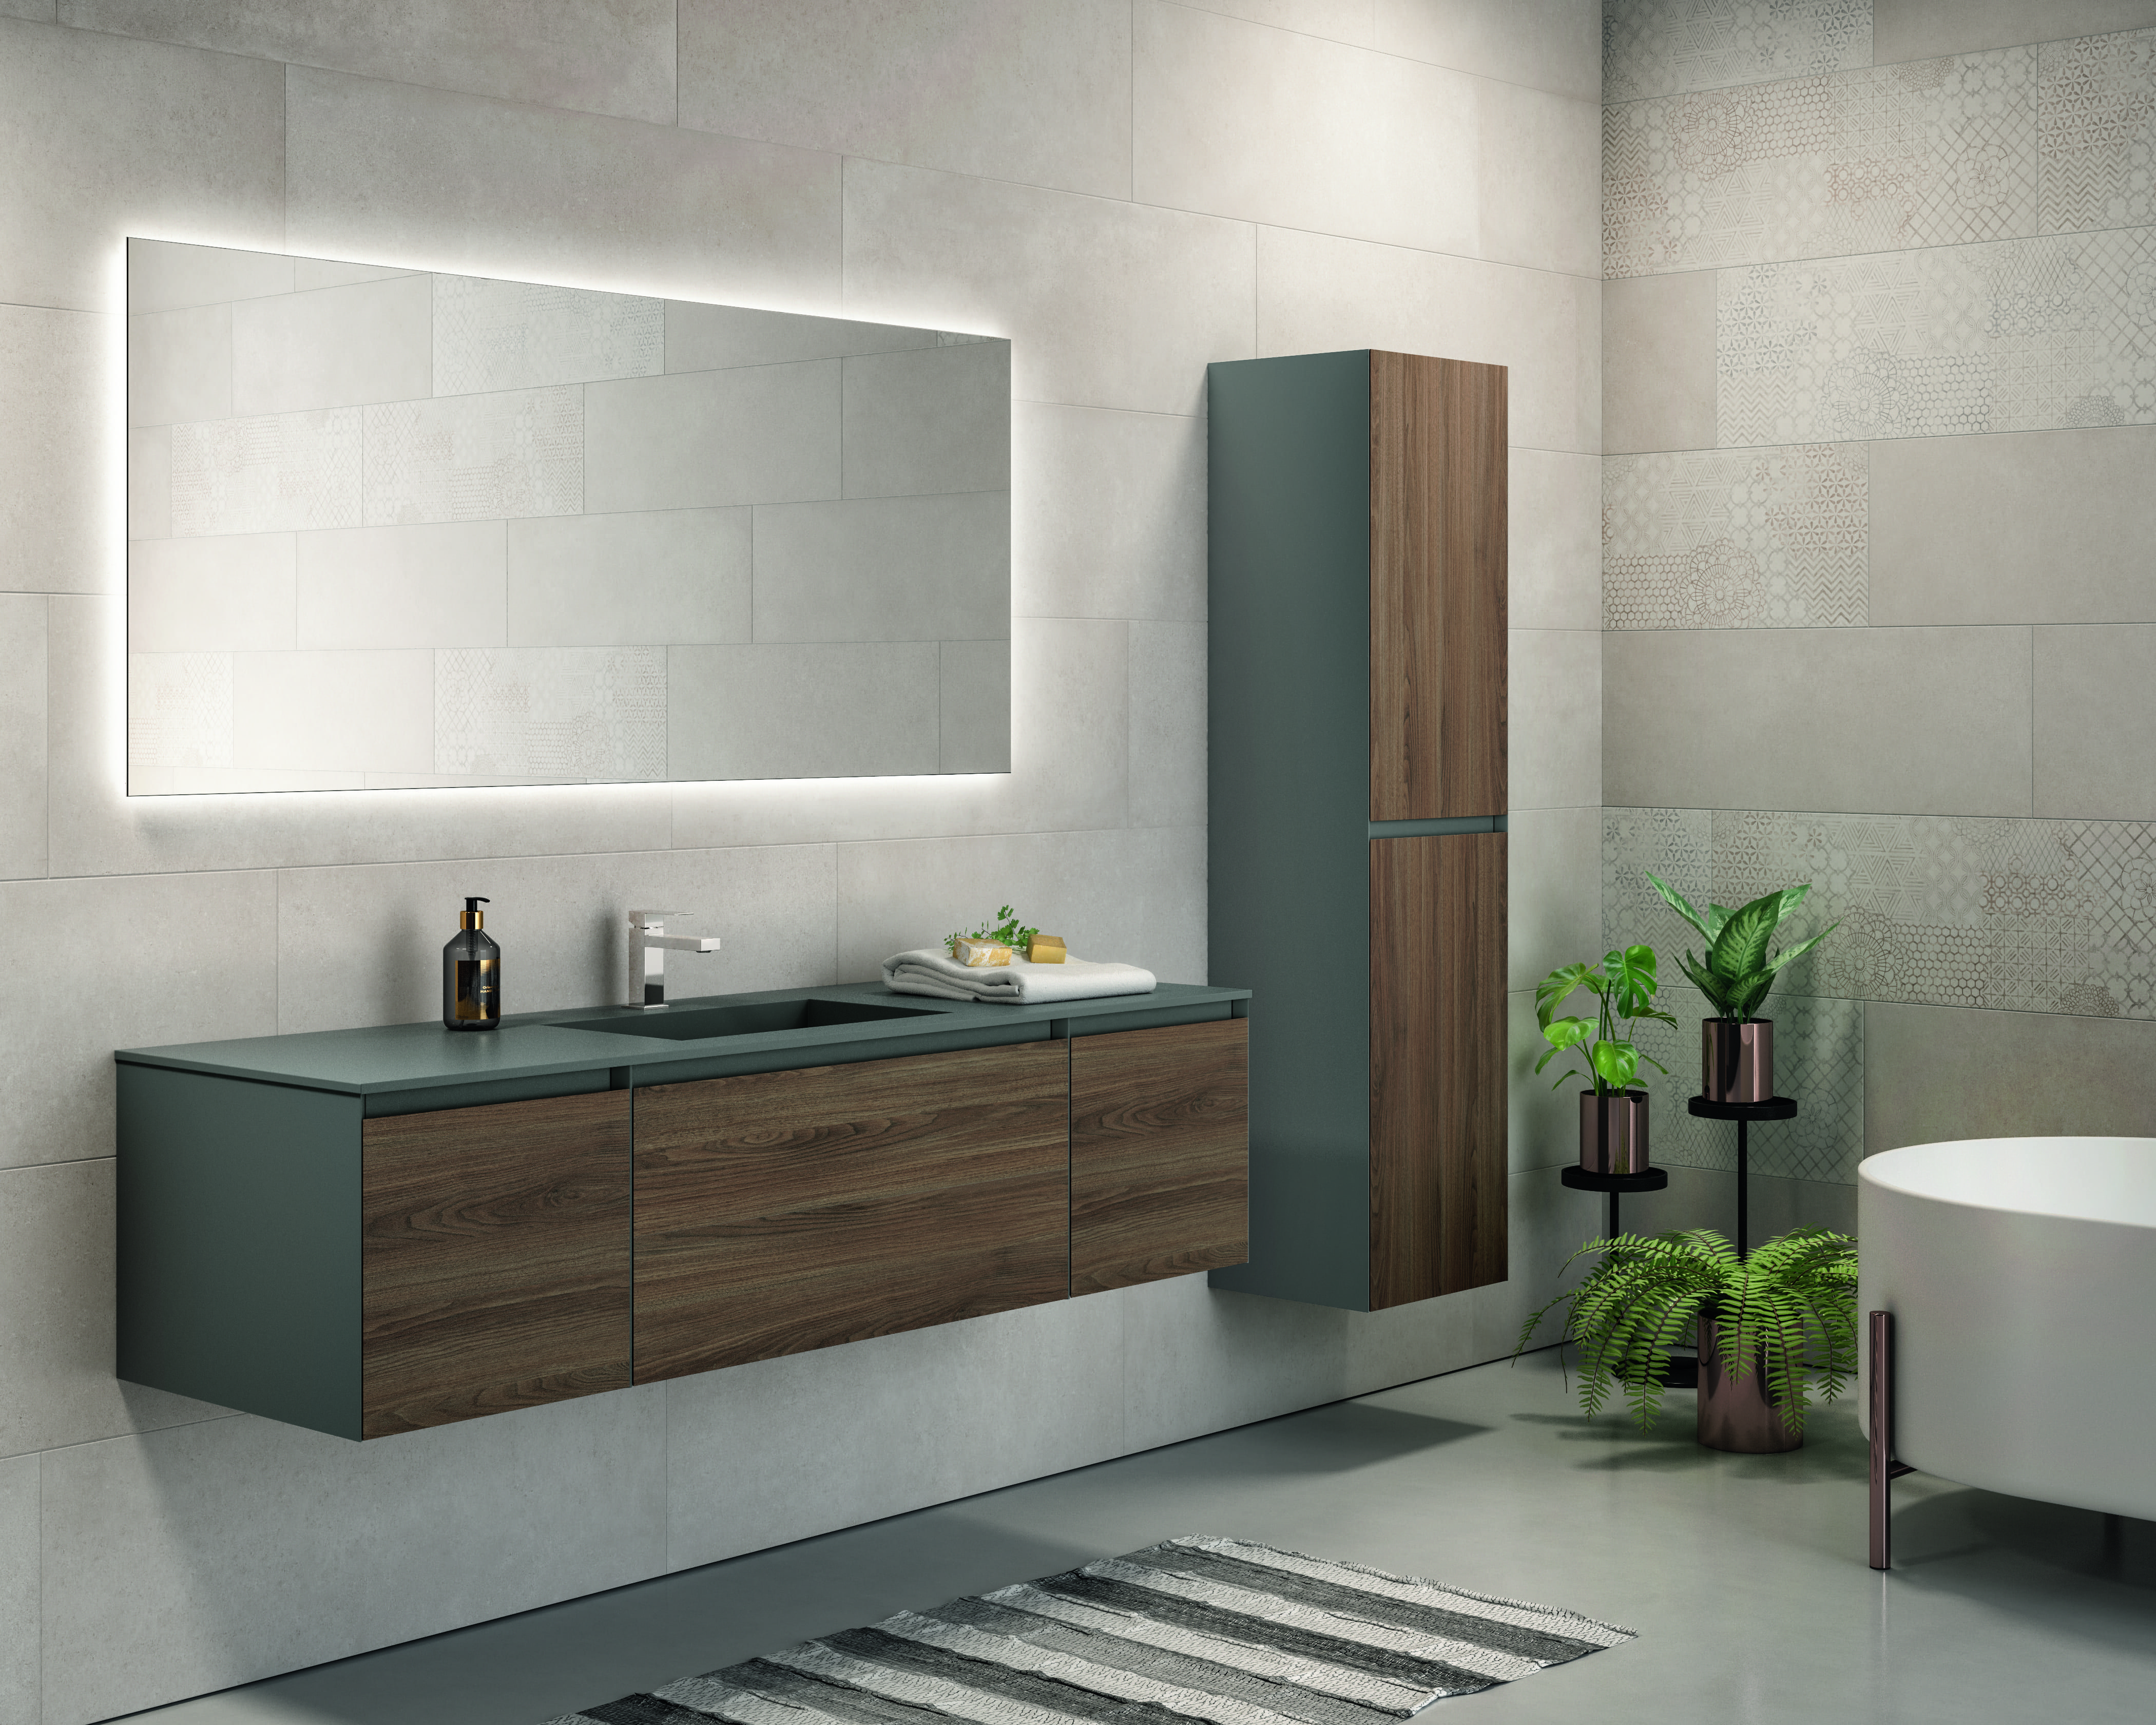 Gb Group Bathroom Furniture Bathroom Furniture Vanity Bathroom